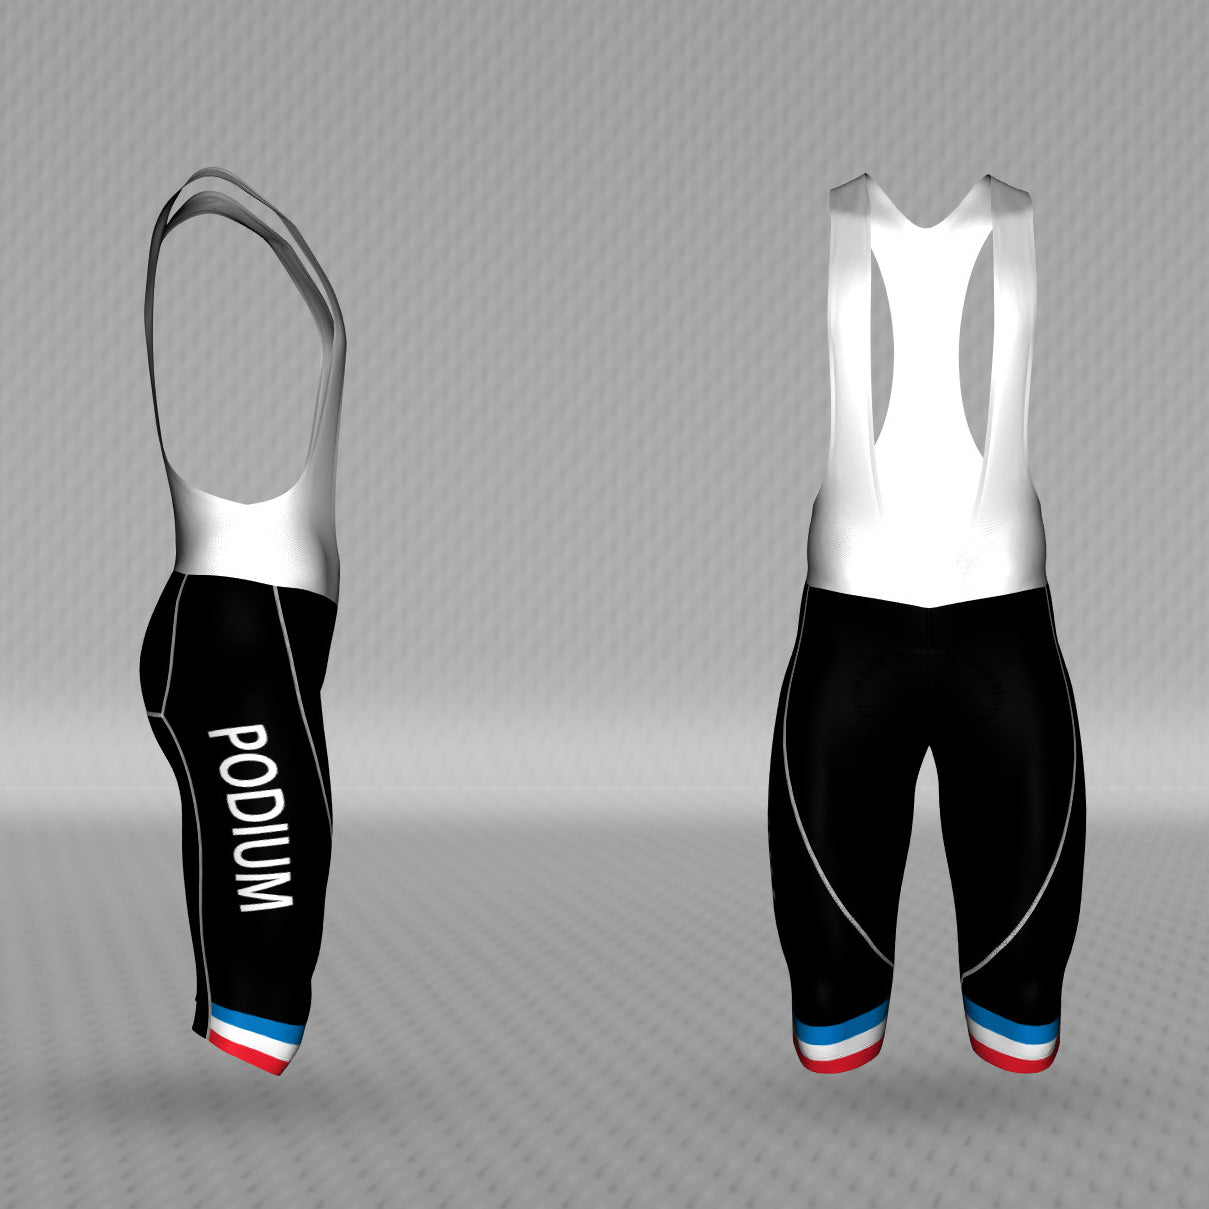 Podium Ascent Pro Bib Knickers by Jakroo